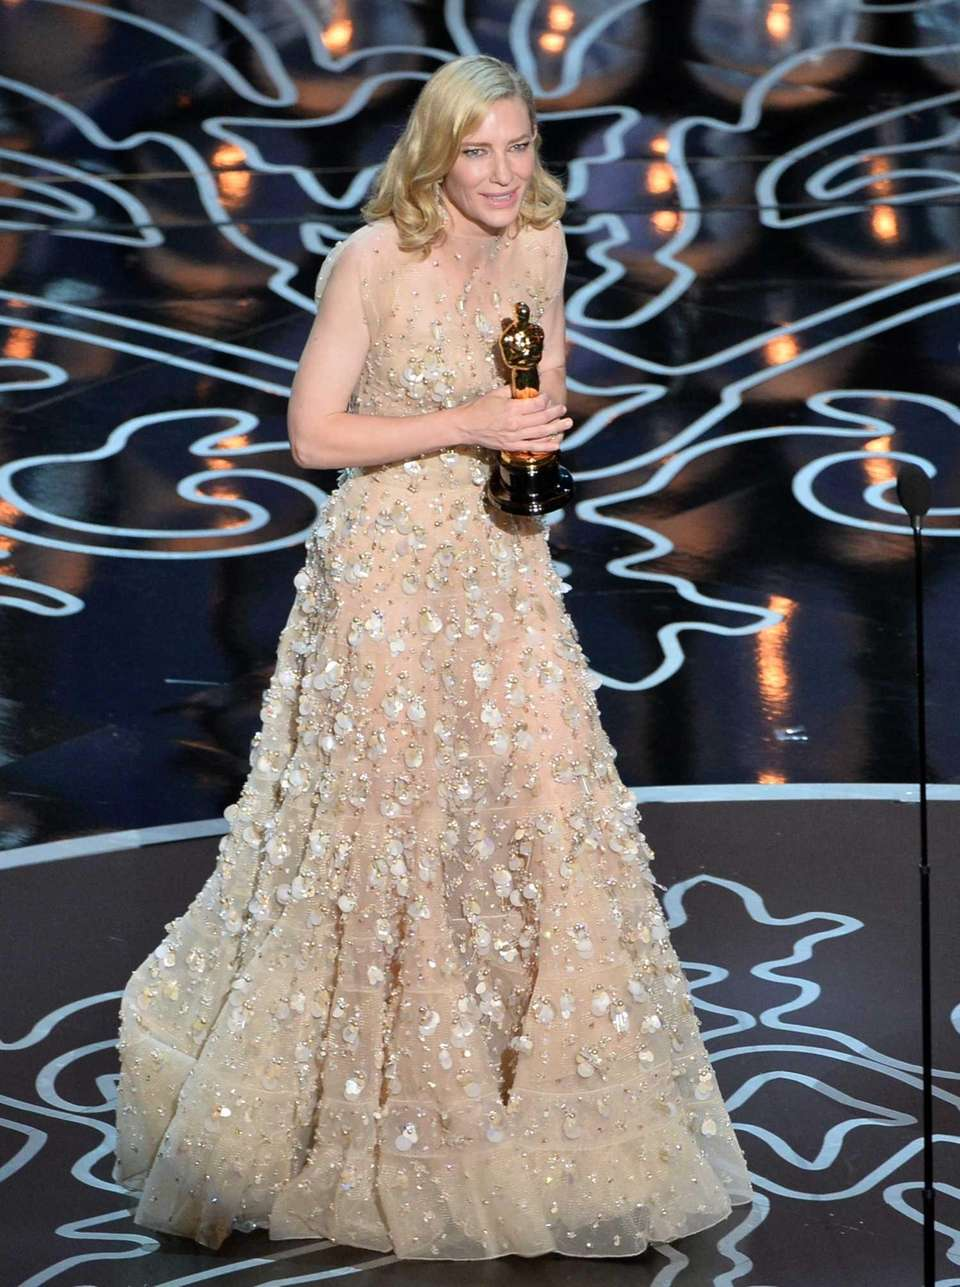 Actor Cate Blanchett, accepting the Oscar statuette she